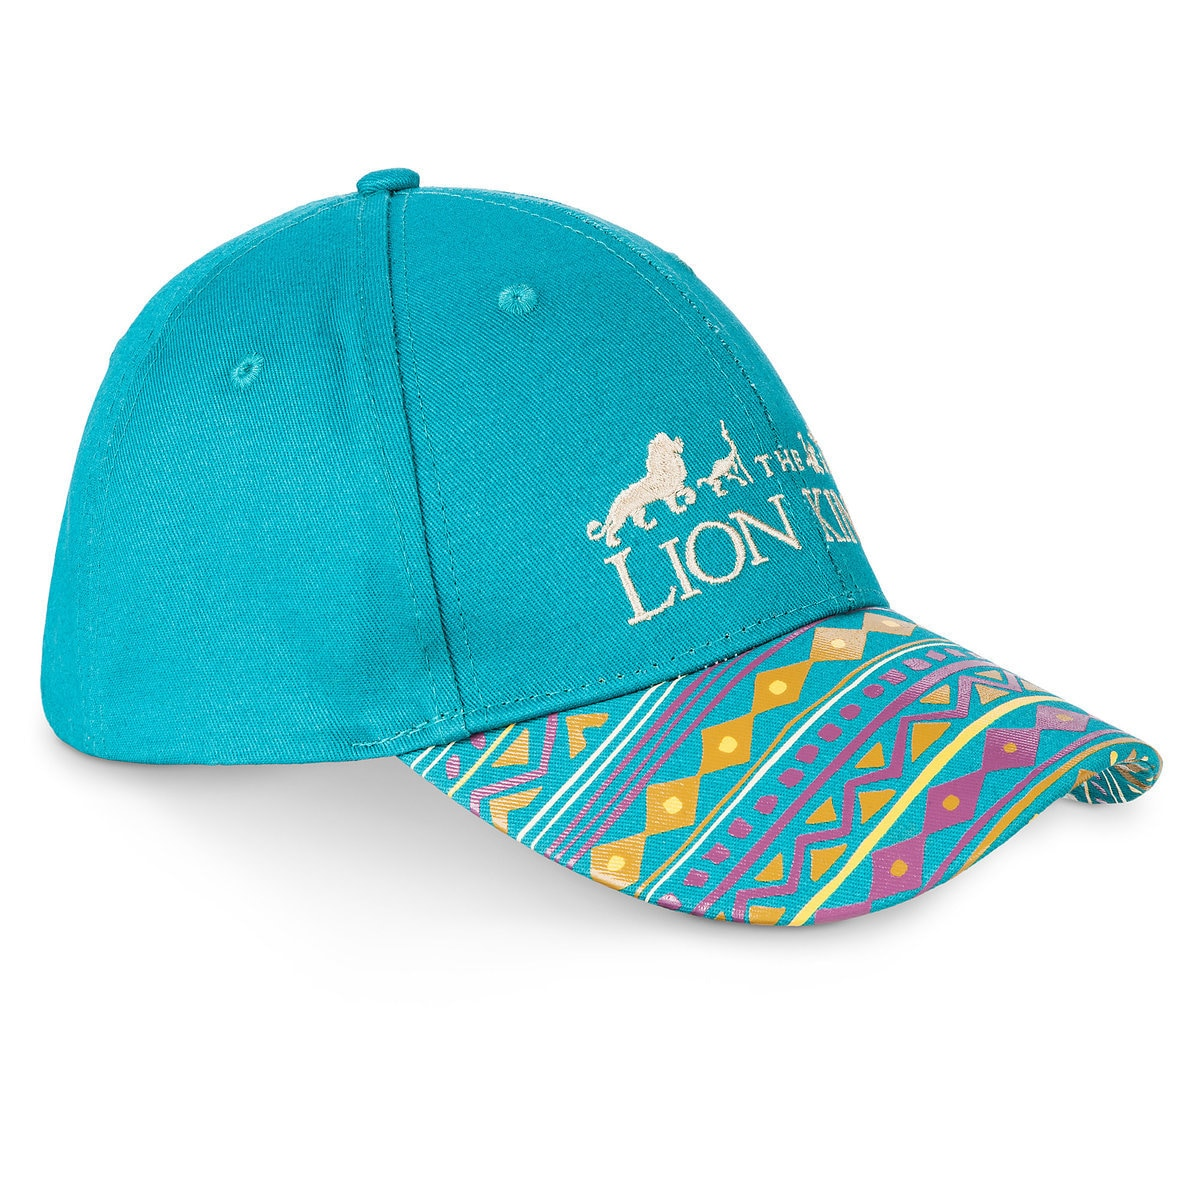 7a874726c Product Image of The Lion King Baseball Cap for Adults by Cakeworthy # 2